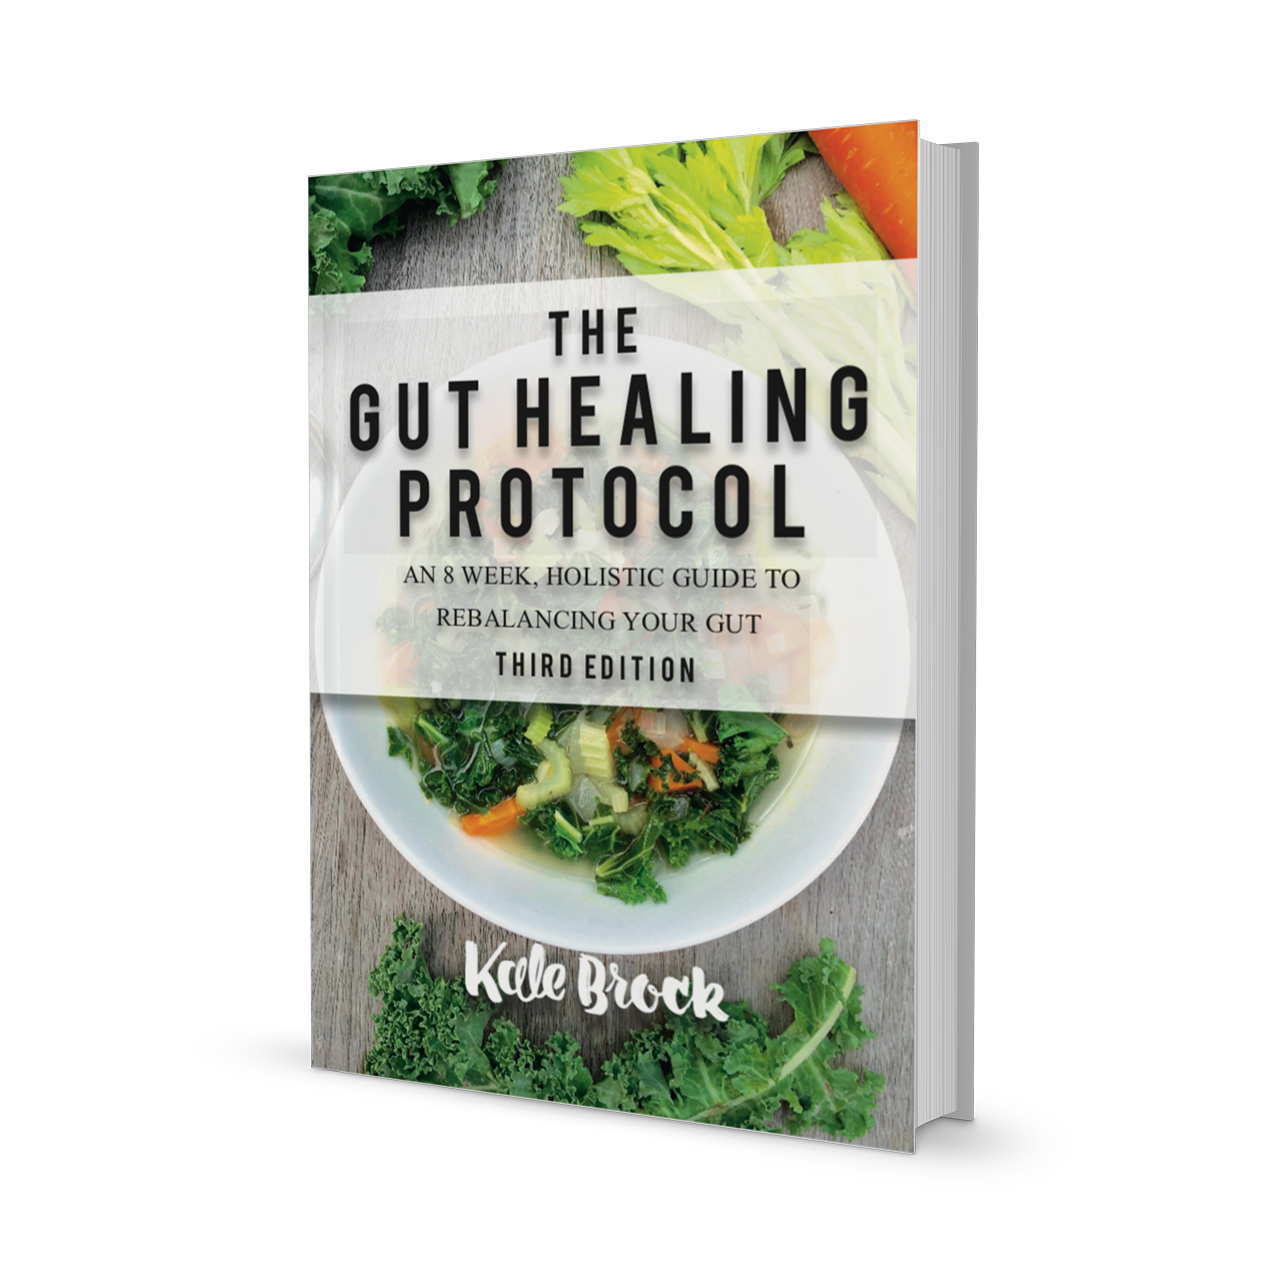 Gut Healing Protocol Book by Kale Brock